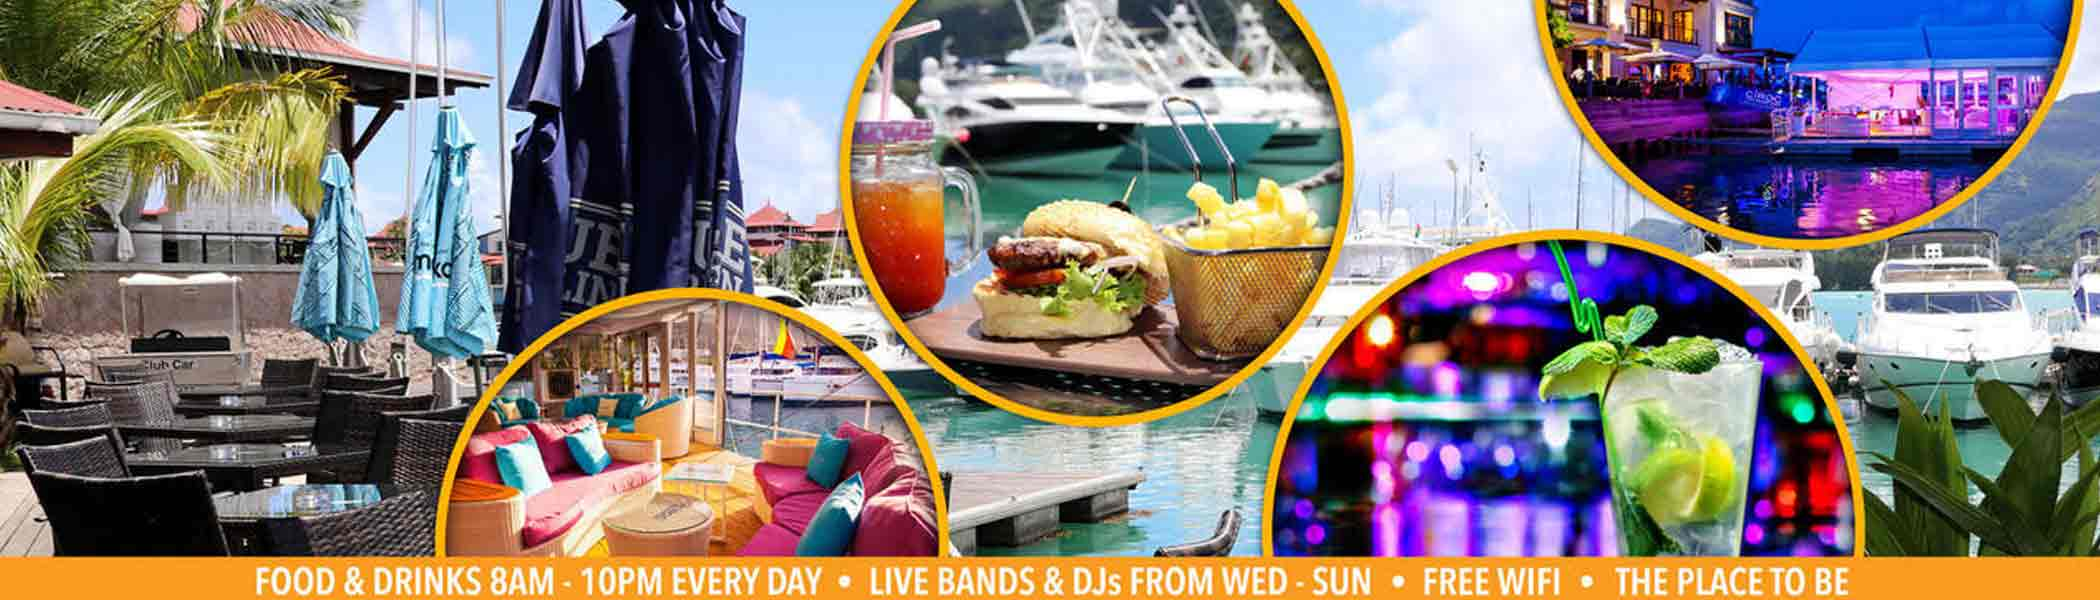 the-boardwalk-bar-and-grill, Bars and restaurants in Seychelles Islands